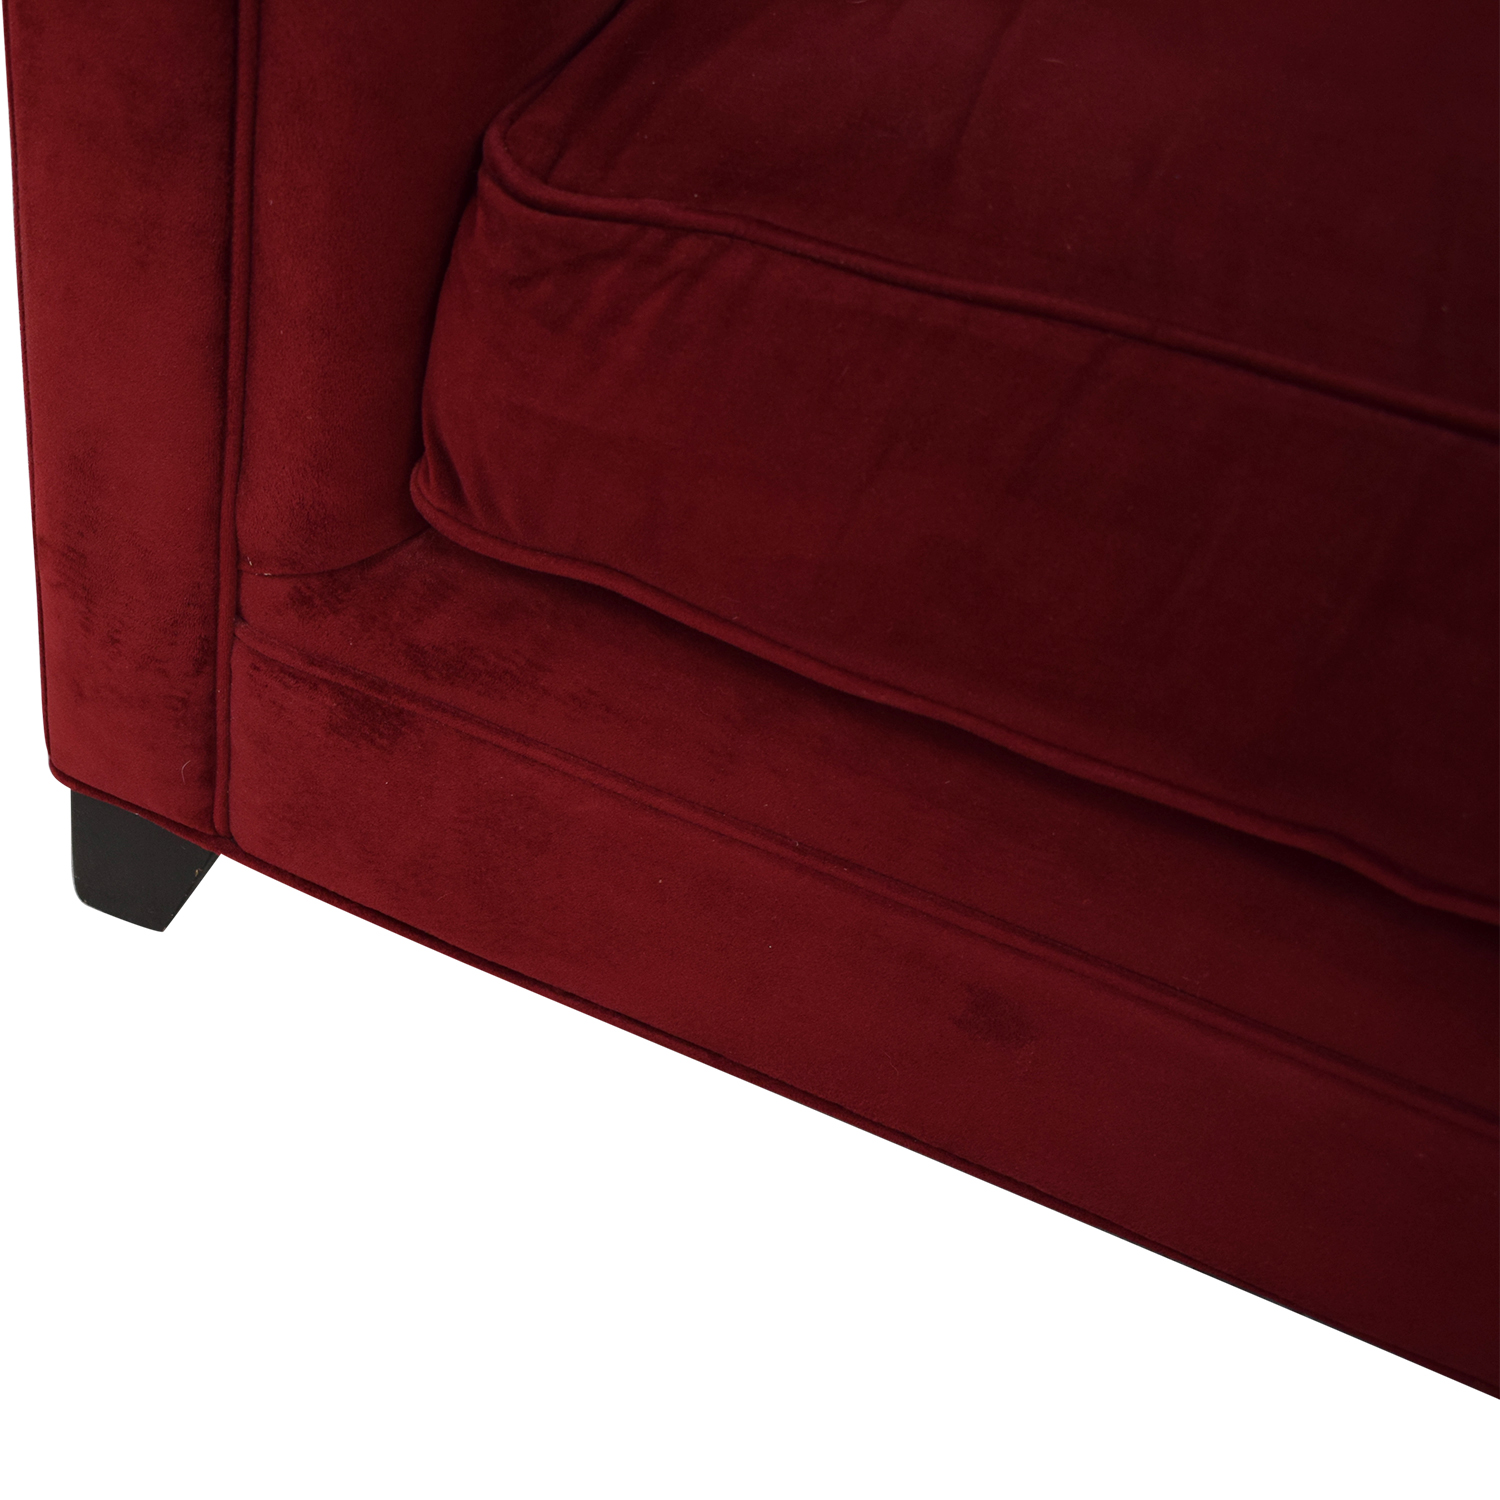 buy Macy's Martha Stewart Collection Saybridge Sofa Macy's Classic Sofas